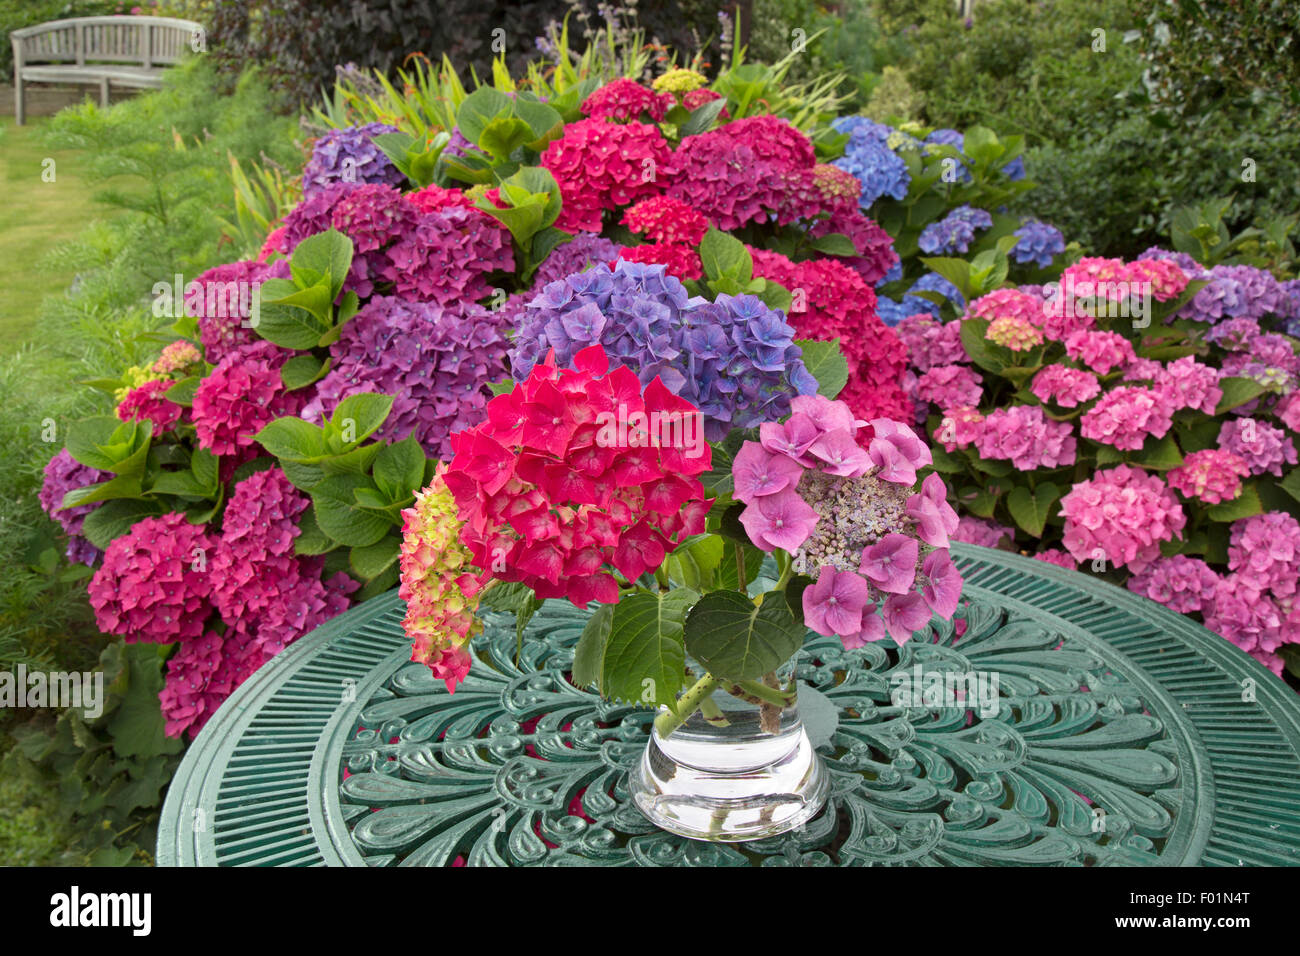 Hydrangeas and garden table with flower arrangement in Summer - Stock Image